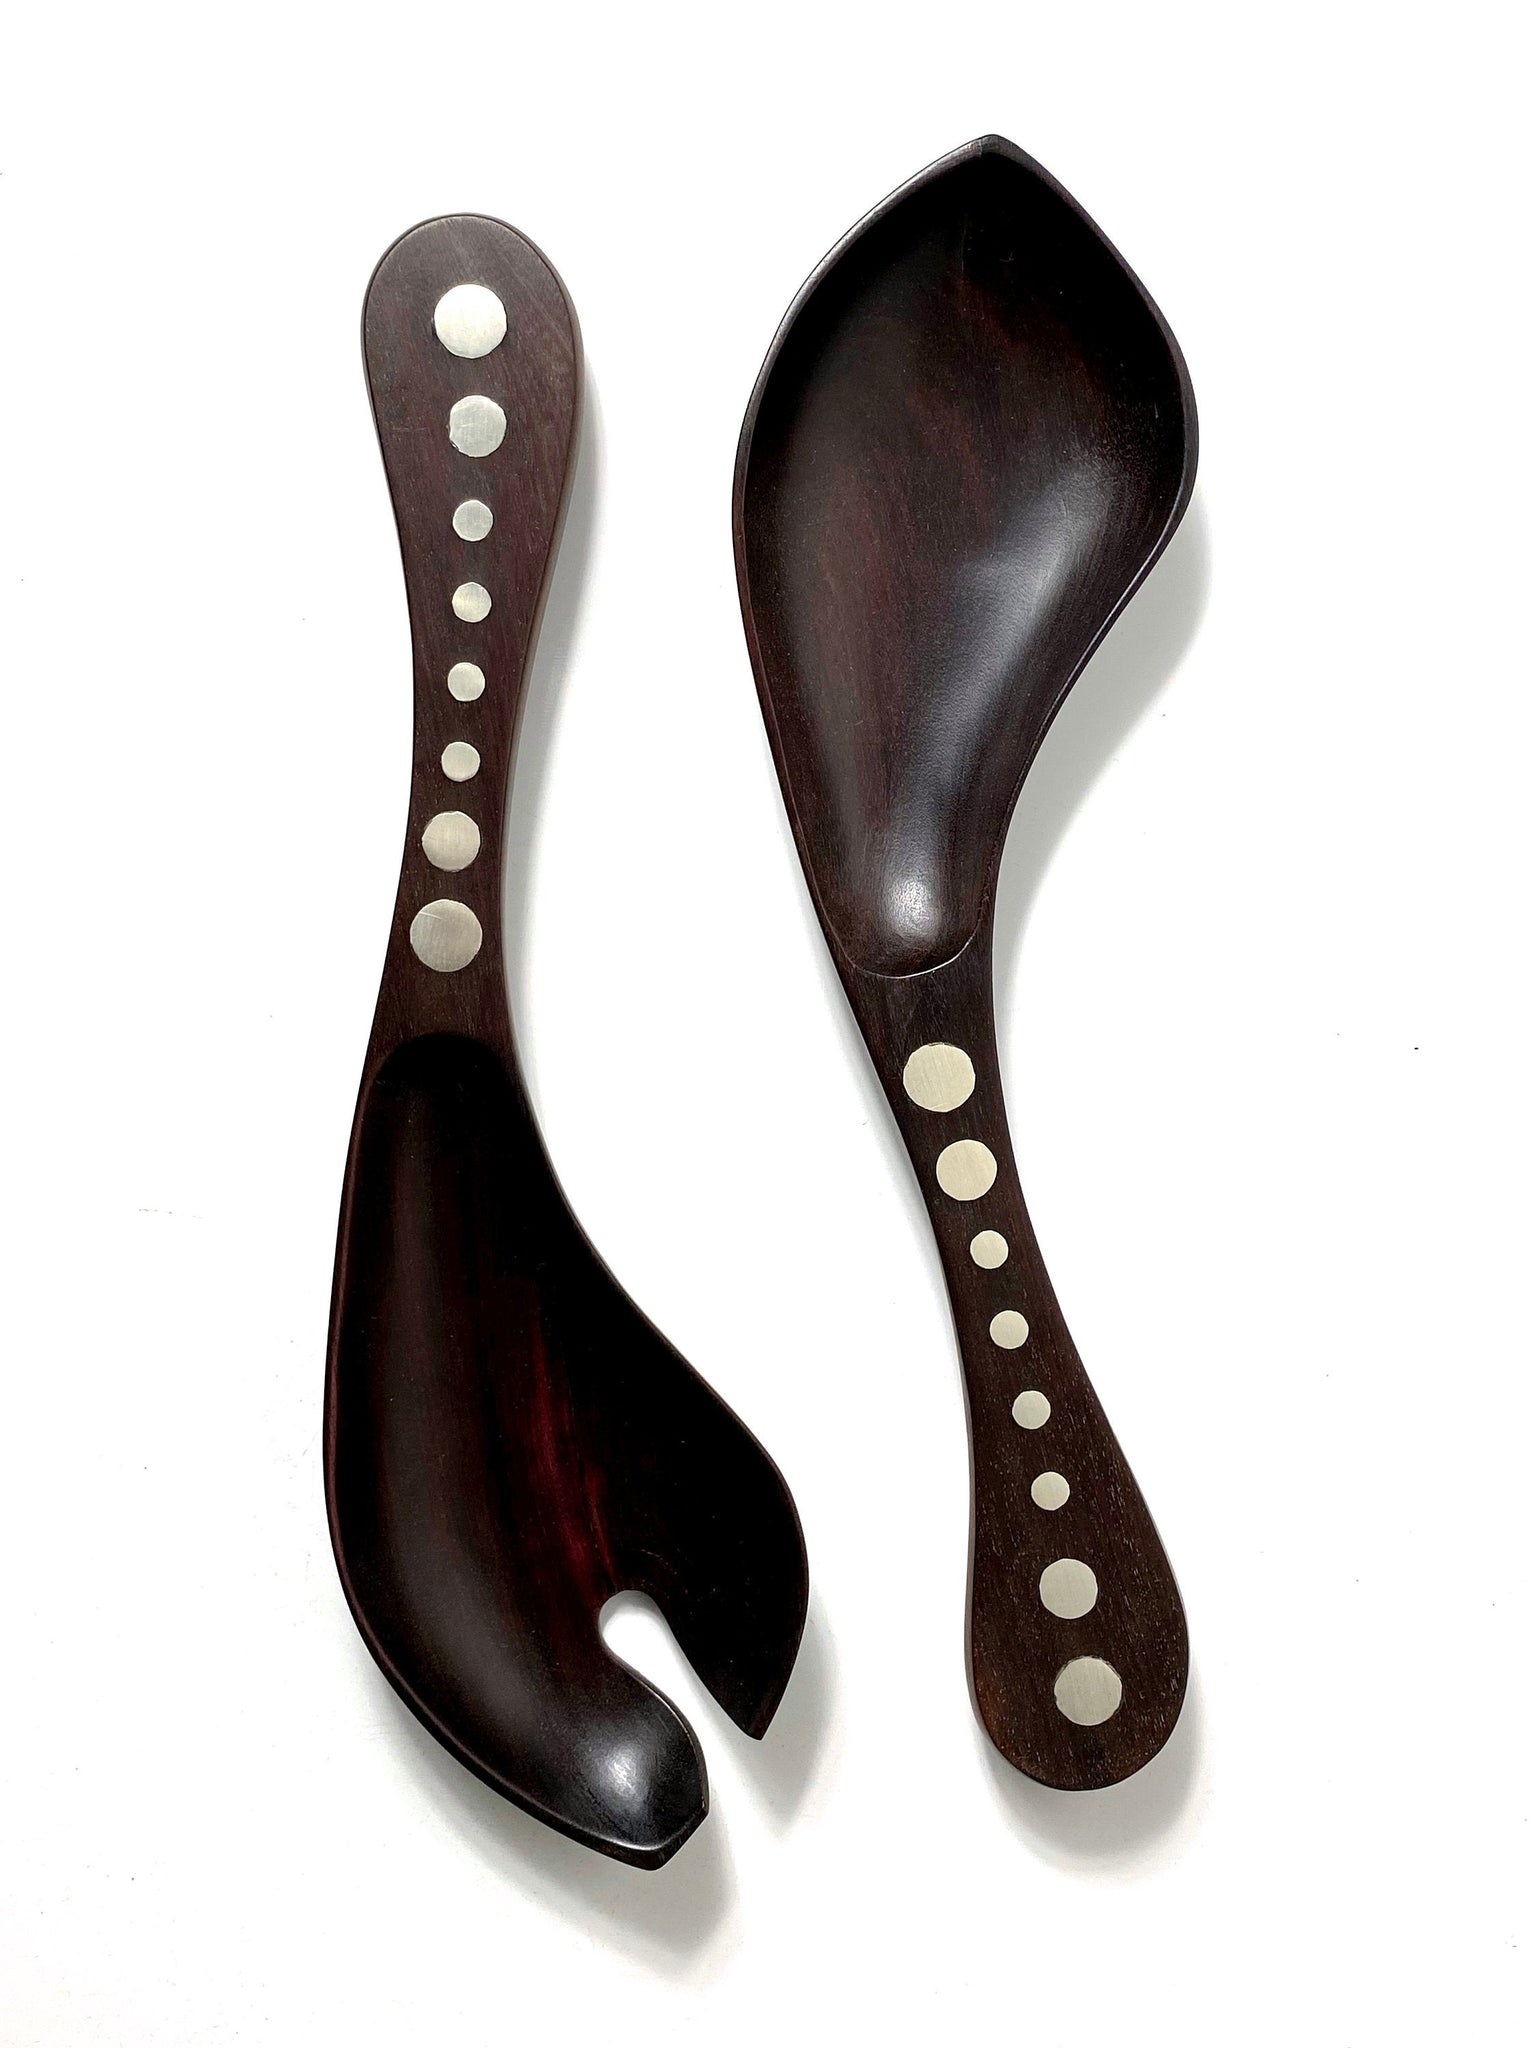 William Spratling Serving Set in Rosewood and Sterling 1950s